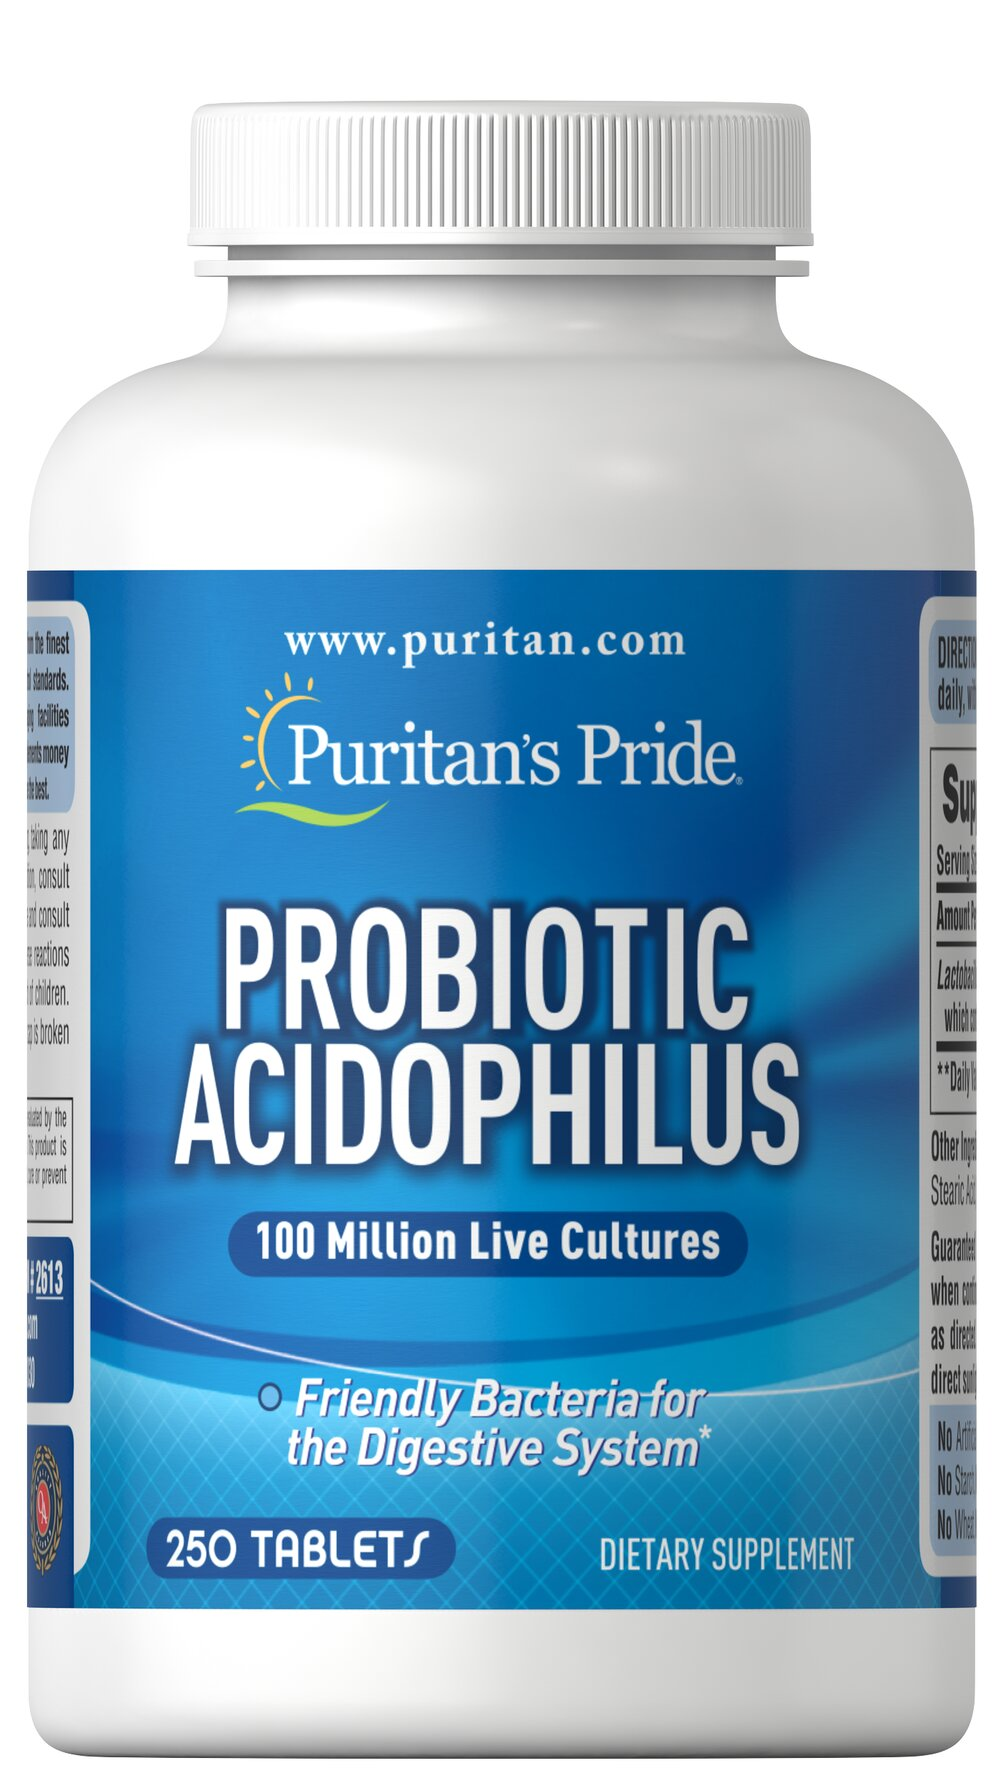 Probiotic Acidophilus <p>Acidophilus supports a favorable environment for the absorption of nutrients, encourages intestinal microflora balance, and promotes the healthy functioning of the intestinal system.** Our Probiotic Acidophilus contains over 100 million active Lactobacillus Acidophilus (including the naturally occurring metabolic product produced by Lactobacilli) at the time of manufacture.</p> 250 Capsules  $14.23